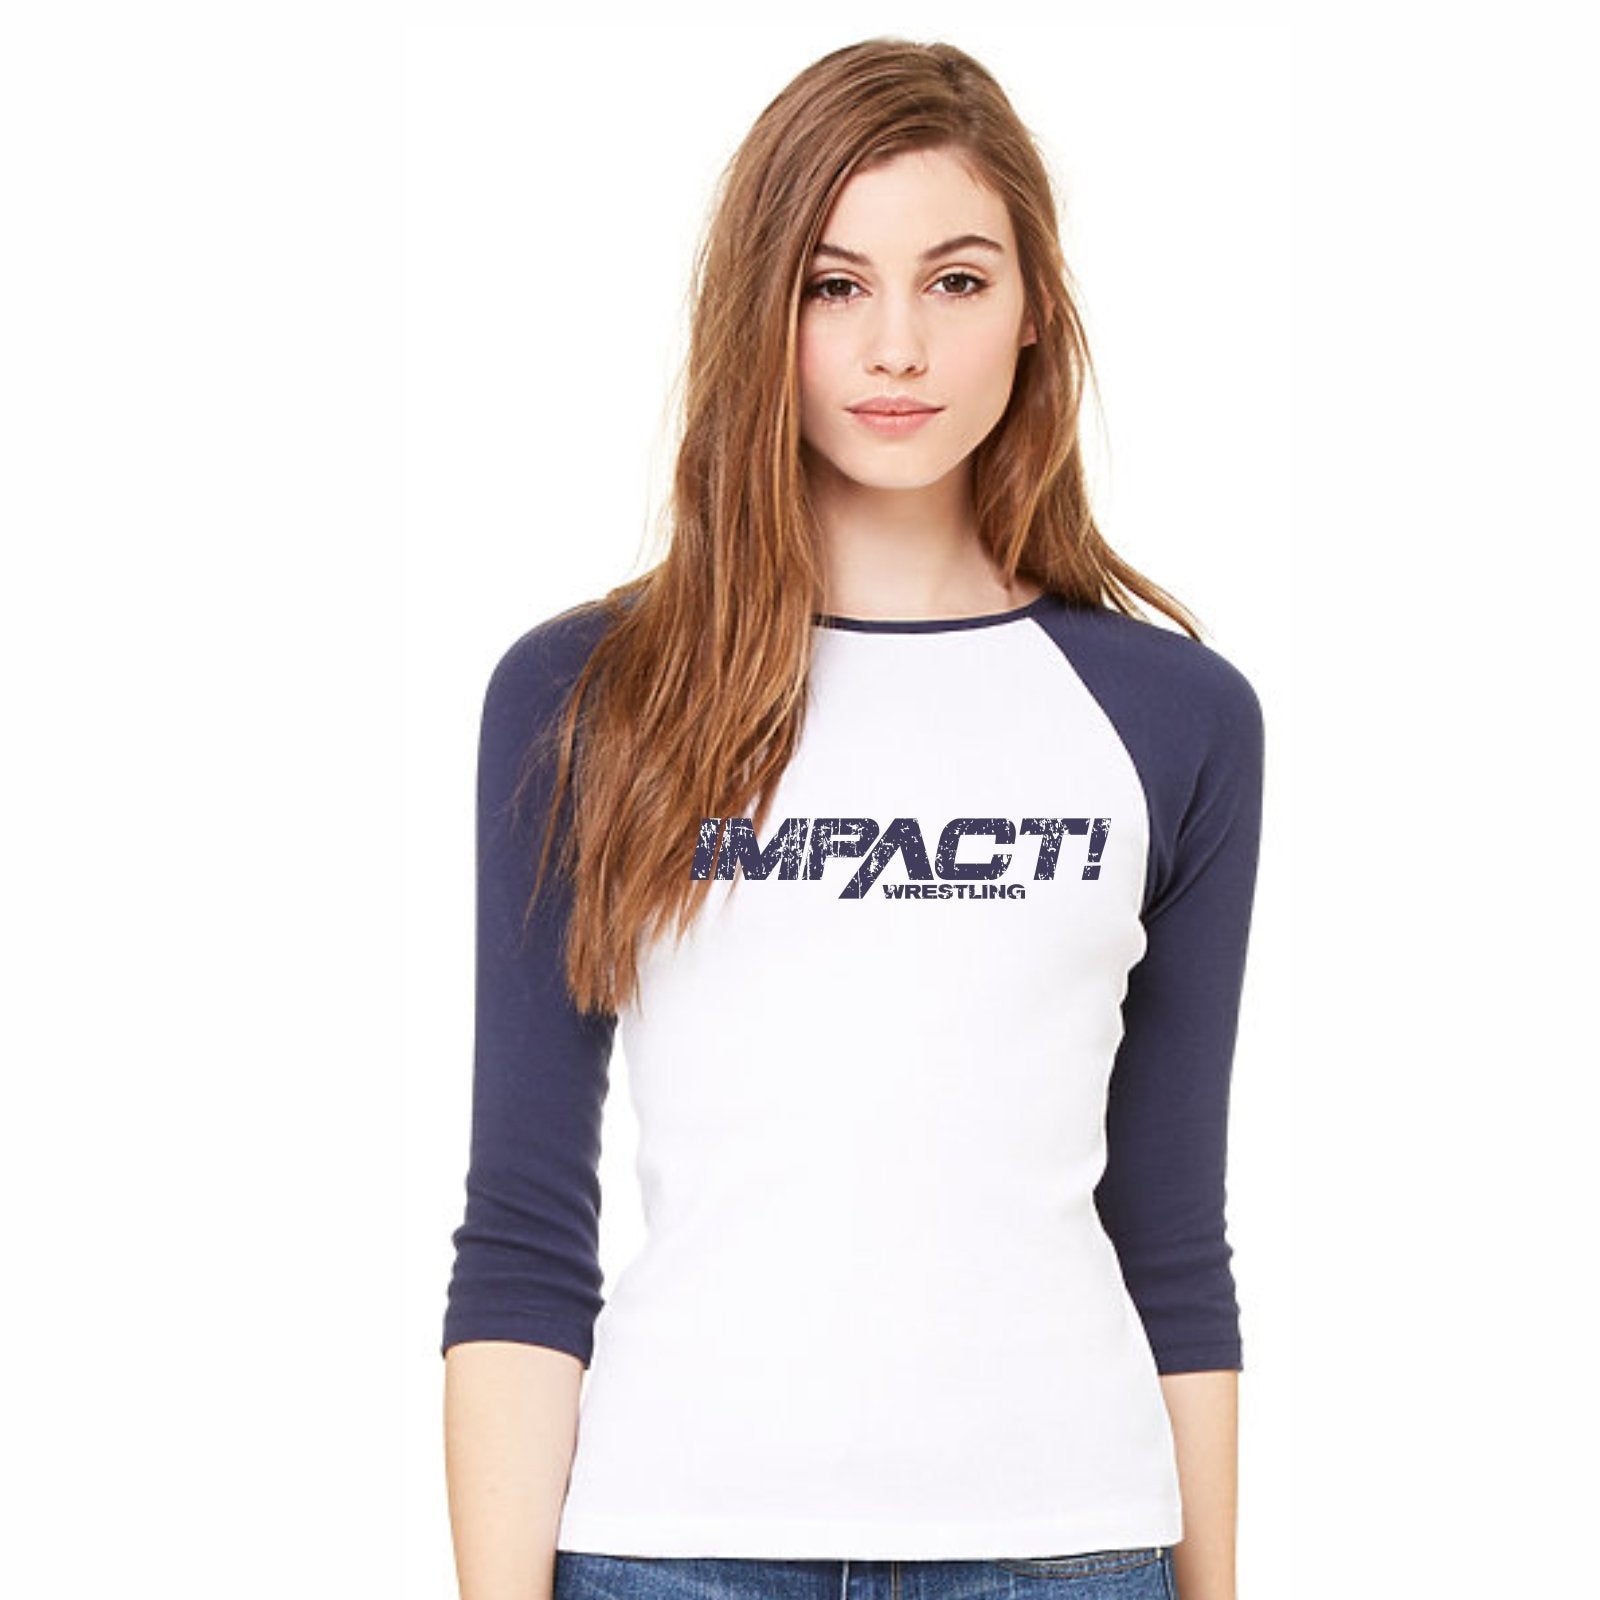 Impact Wrestling Distressed Women's Baseball Tee - White/Navy Sleeve